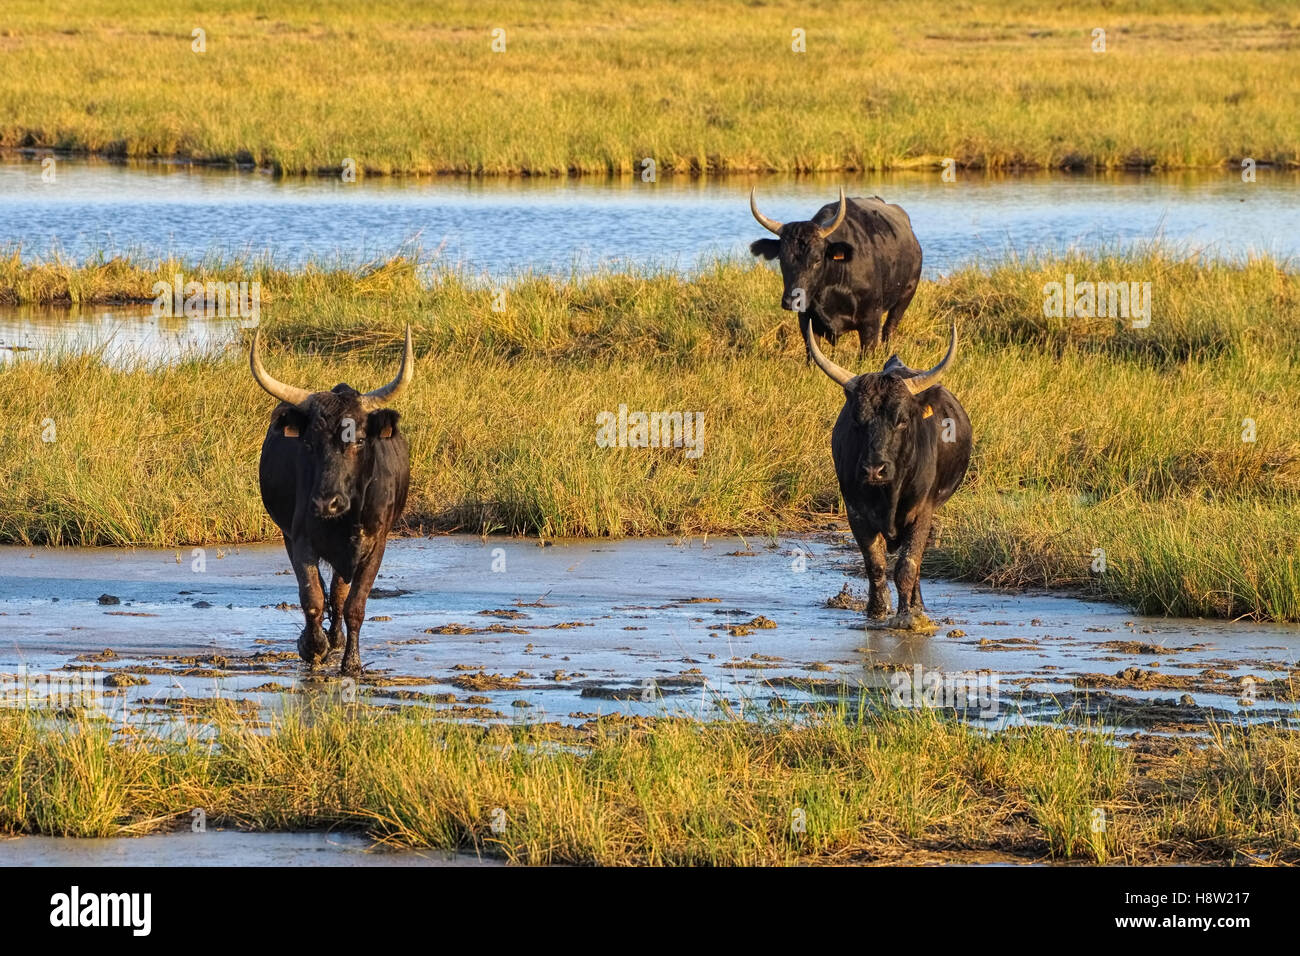 schwarze Camargue-Stiere - black Camarguais bulls in swamp, southern France - Stock Image